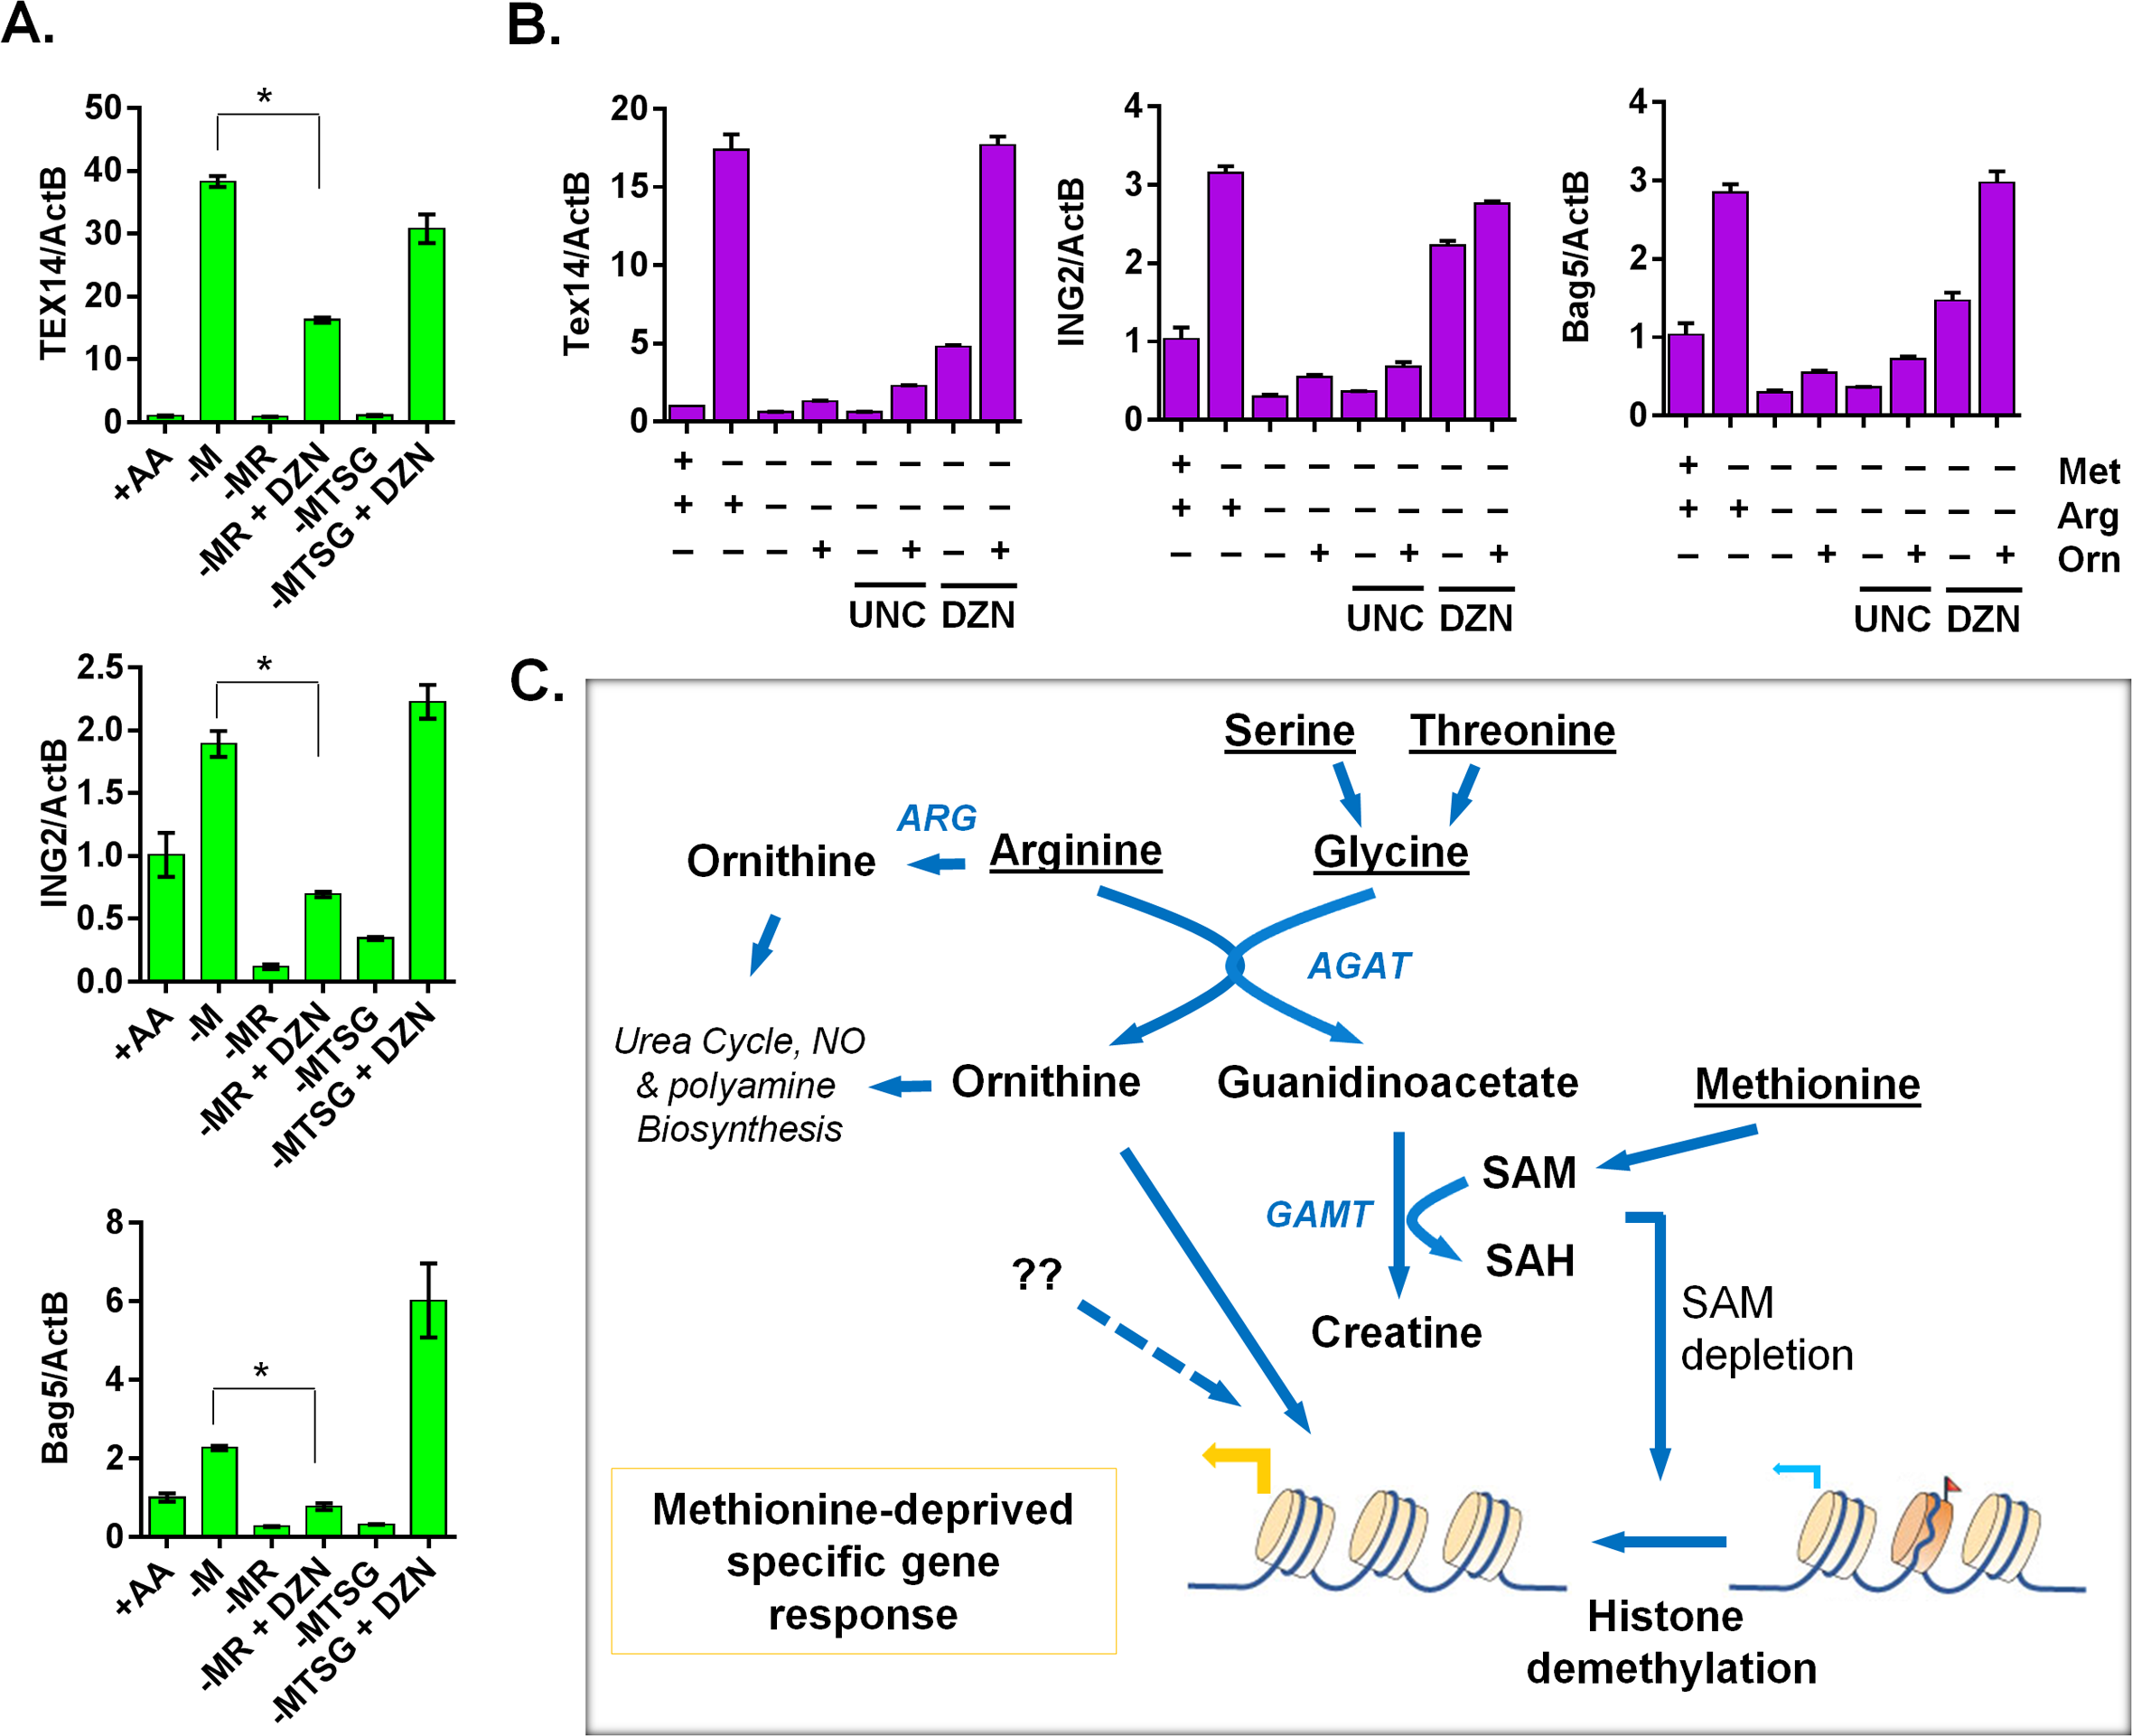 The ornithine-mediated signaling is required for the complete induction of the methionine-deprived specific gene response.